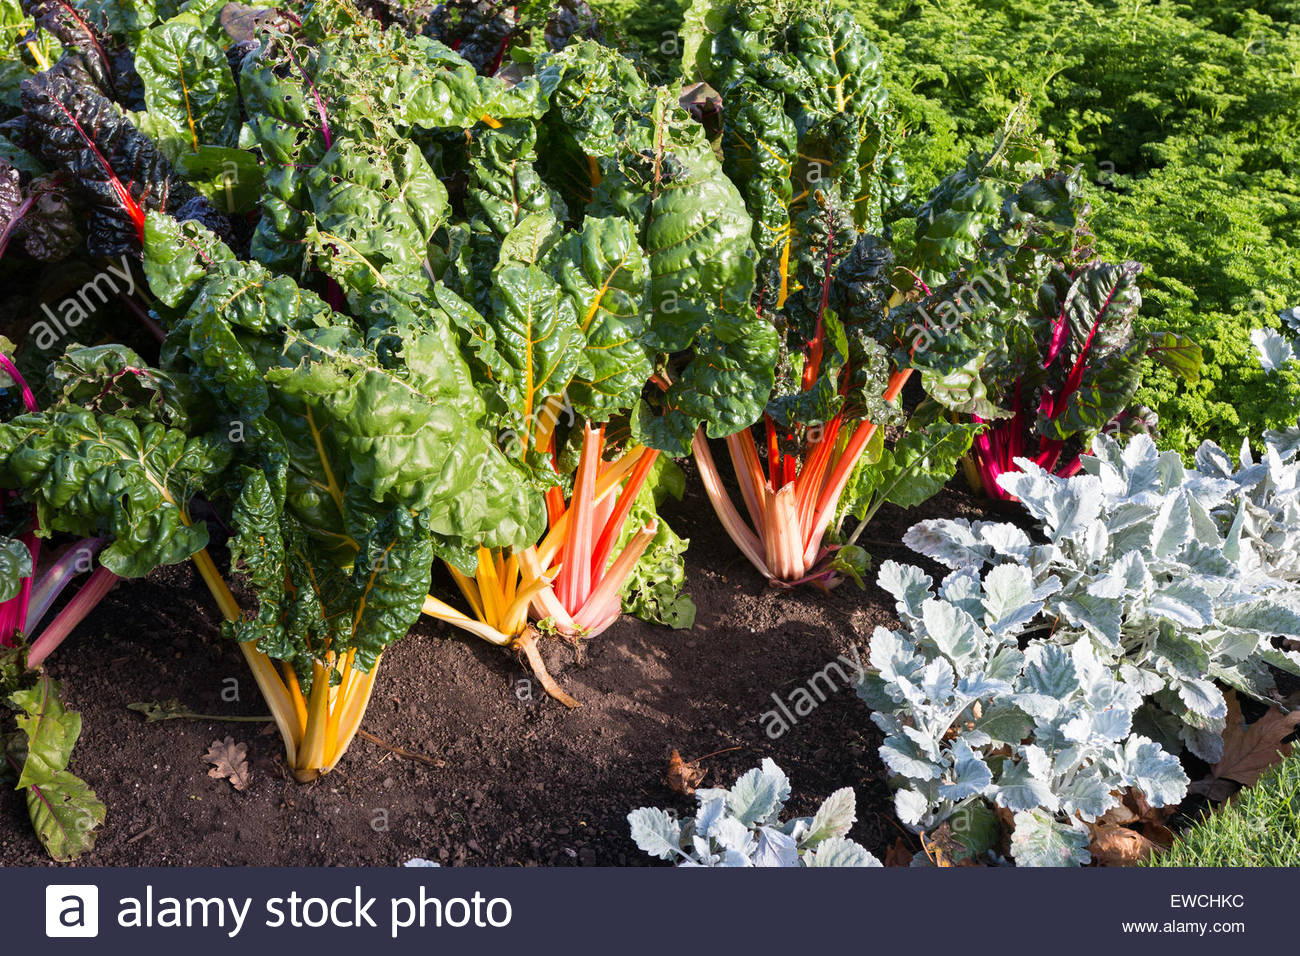 Bed with Silvebeet and Parsley in a vegetable garden - Stock Image